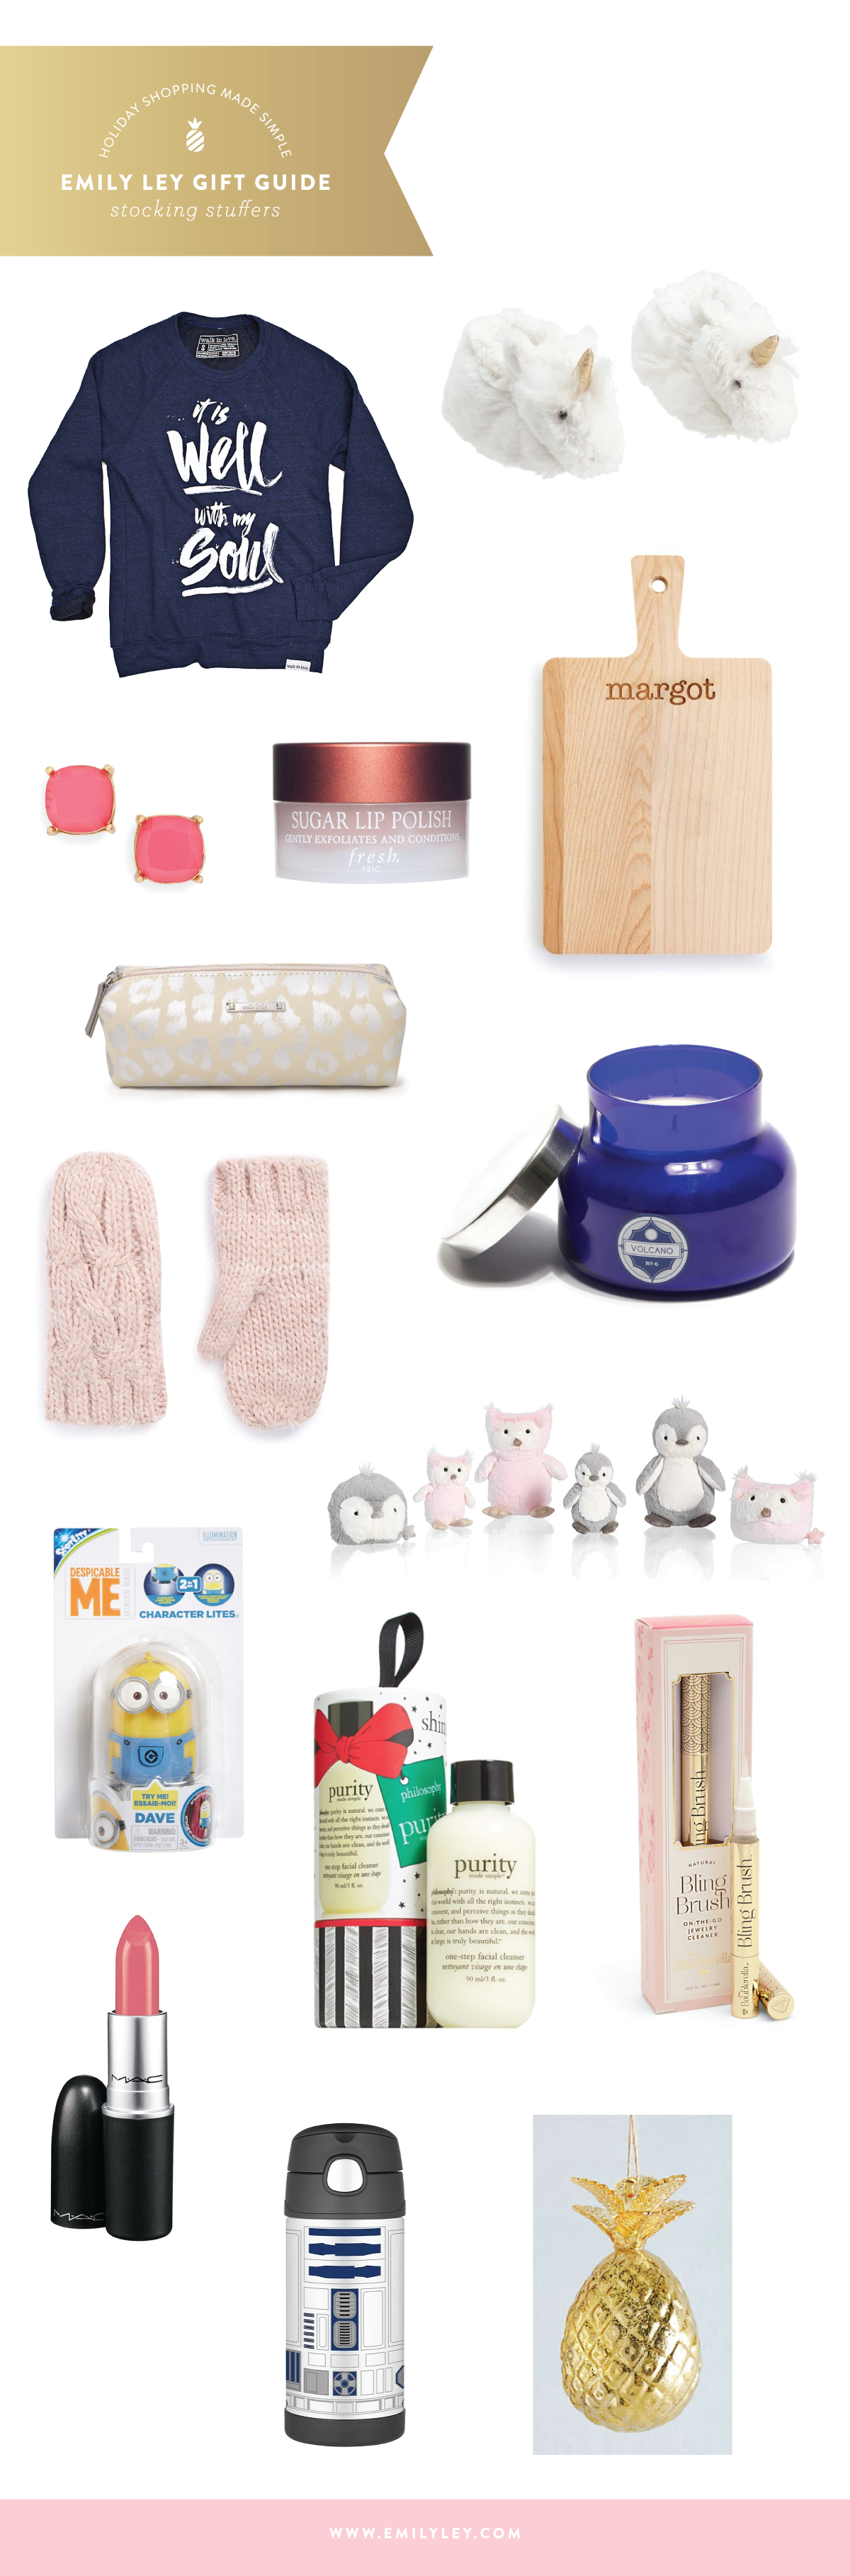 Emily-Ley-Gift-Guide-Stocking-Stuffers-2.png